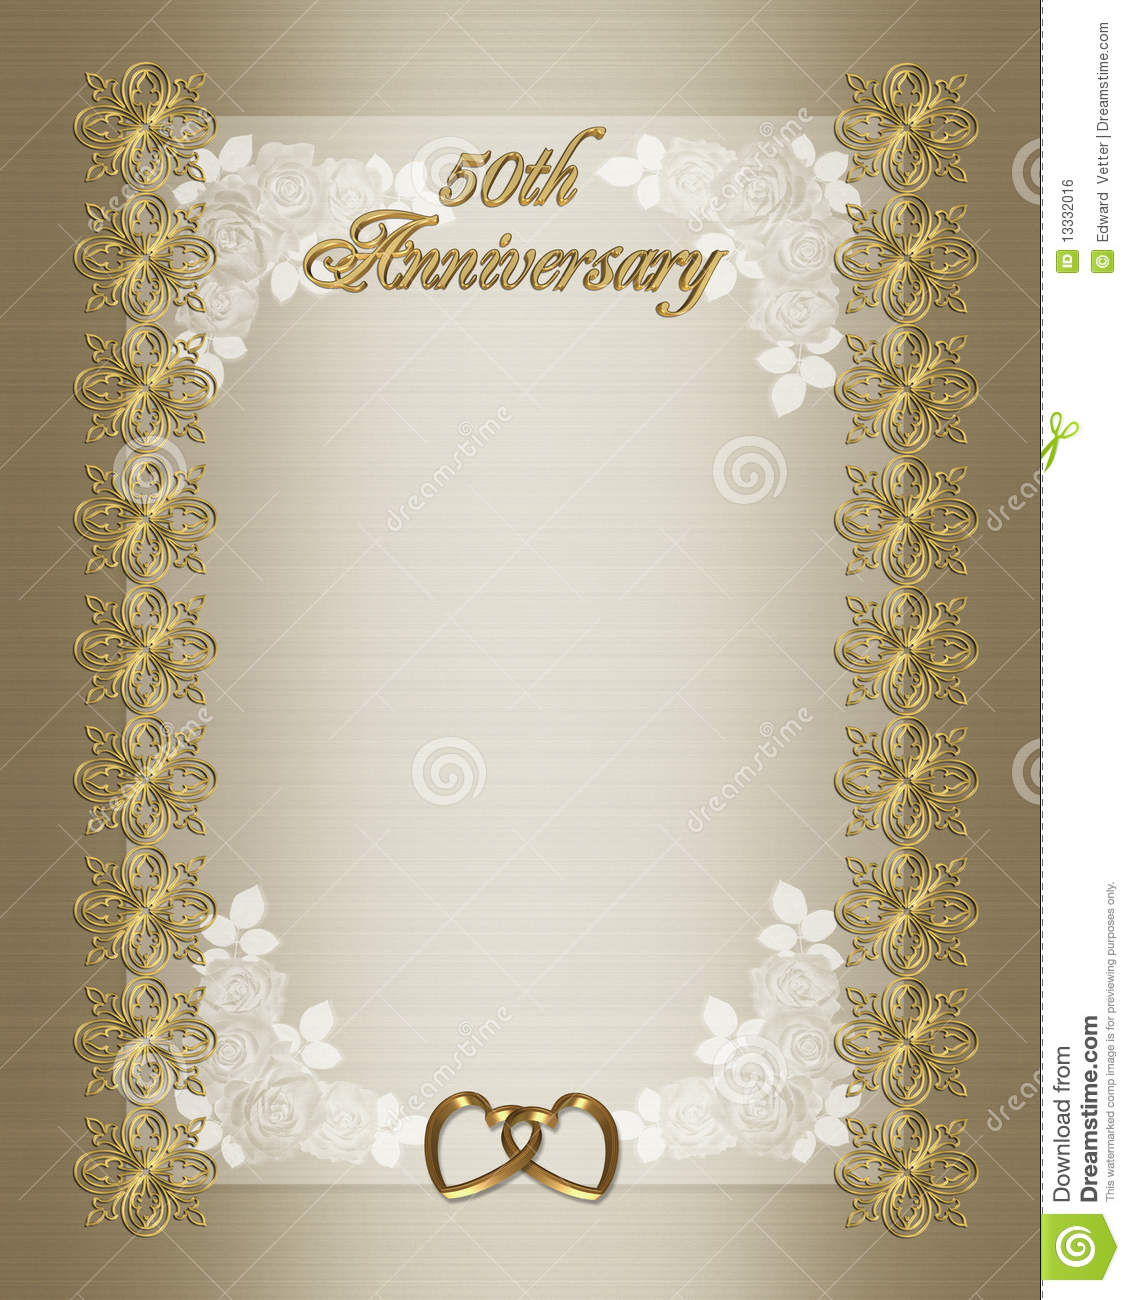 Wedding anniversary template gidiyedformapolitica wedding anniversary template stopboris